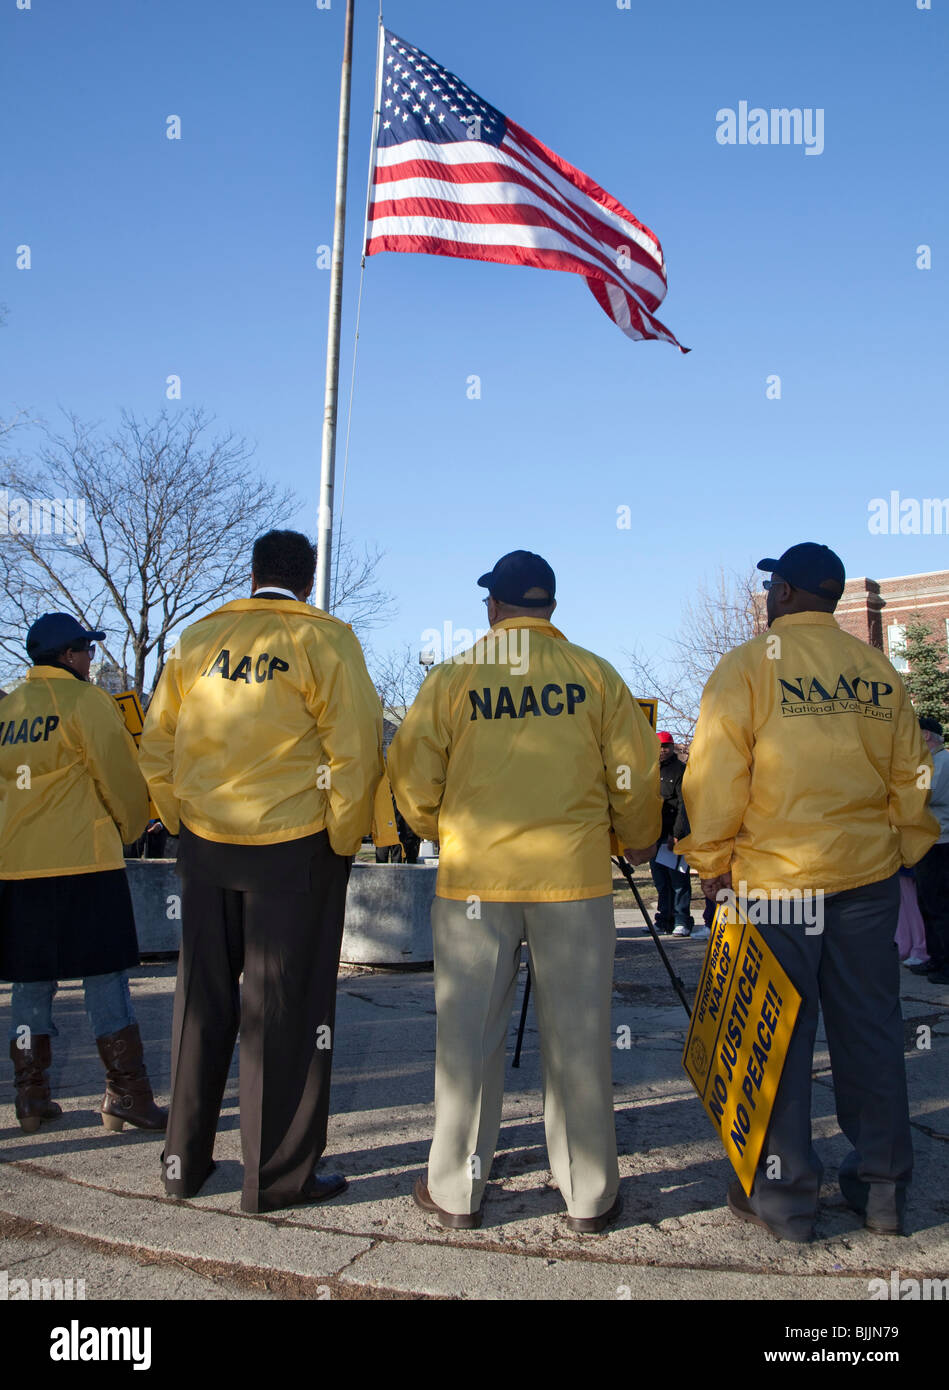 Rally for More Diversity and Civilian Oversight of Police Force - Stock Image